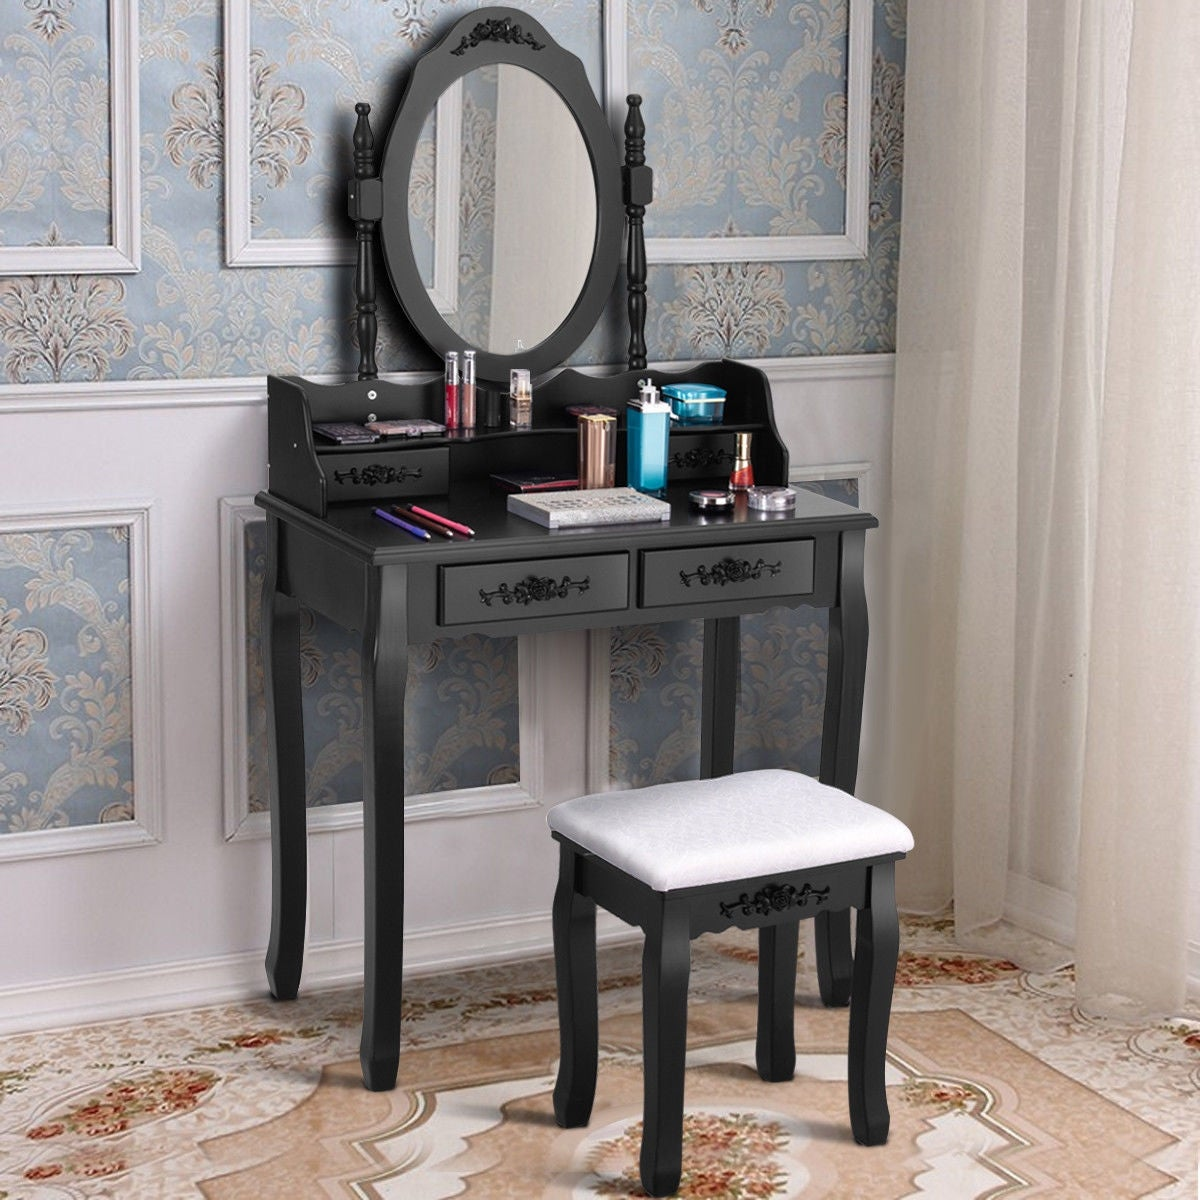 Ordinaire Costway Vanity Wood Makeup Dressing Table Stool Set Bedroom Mirror 4  Drawers Black